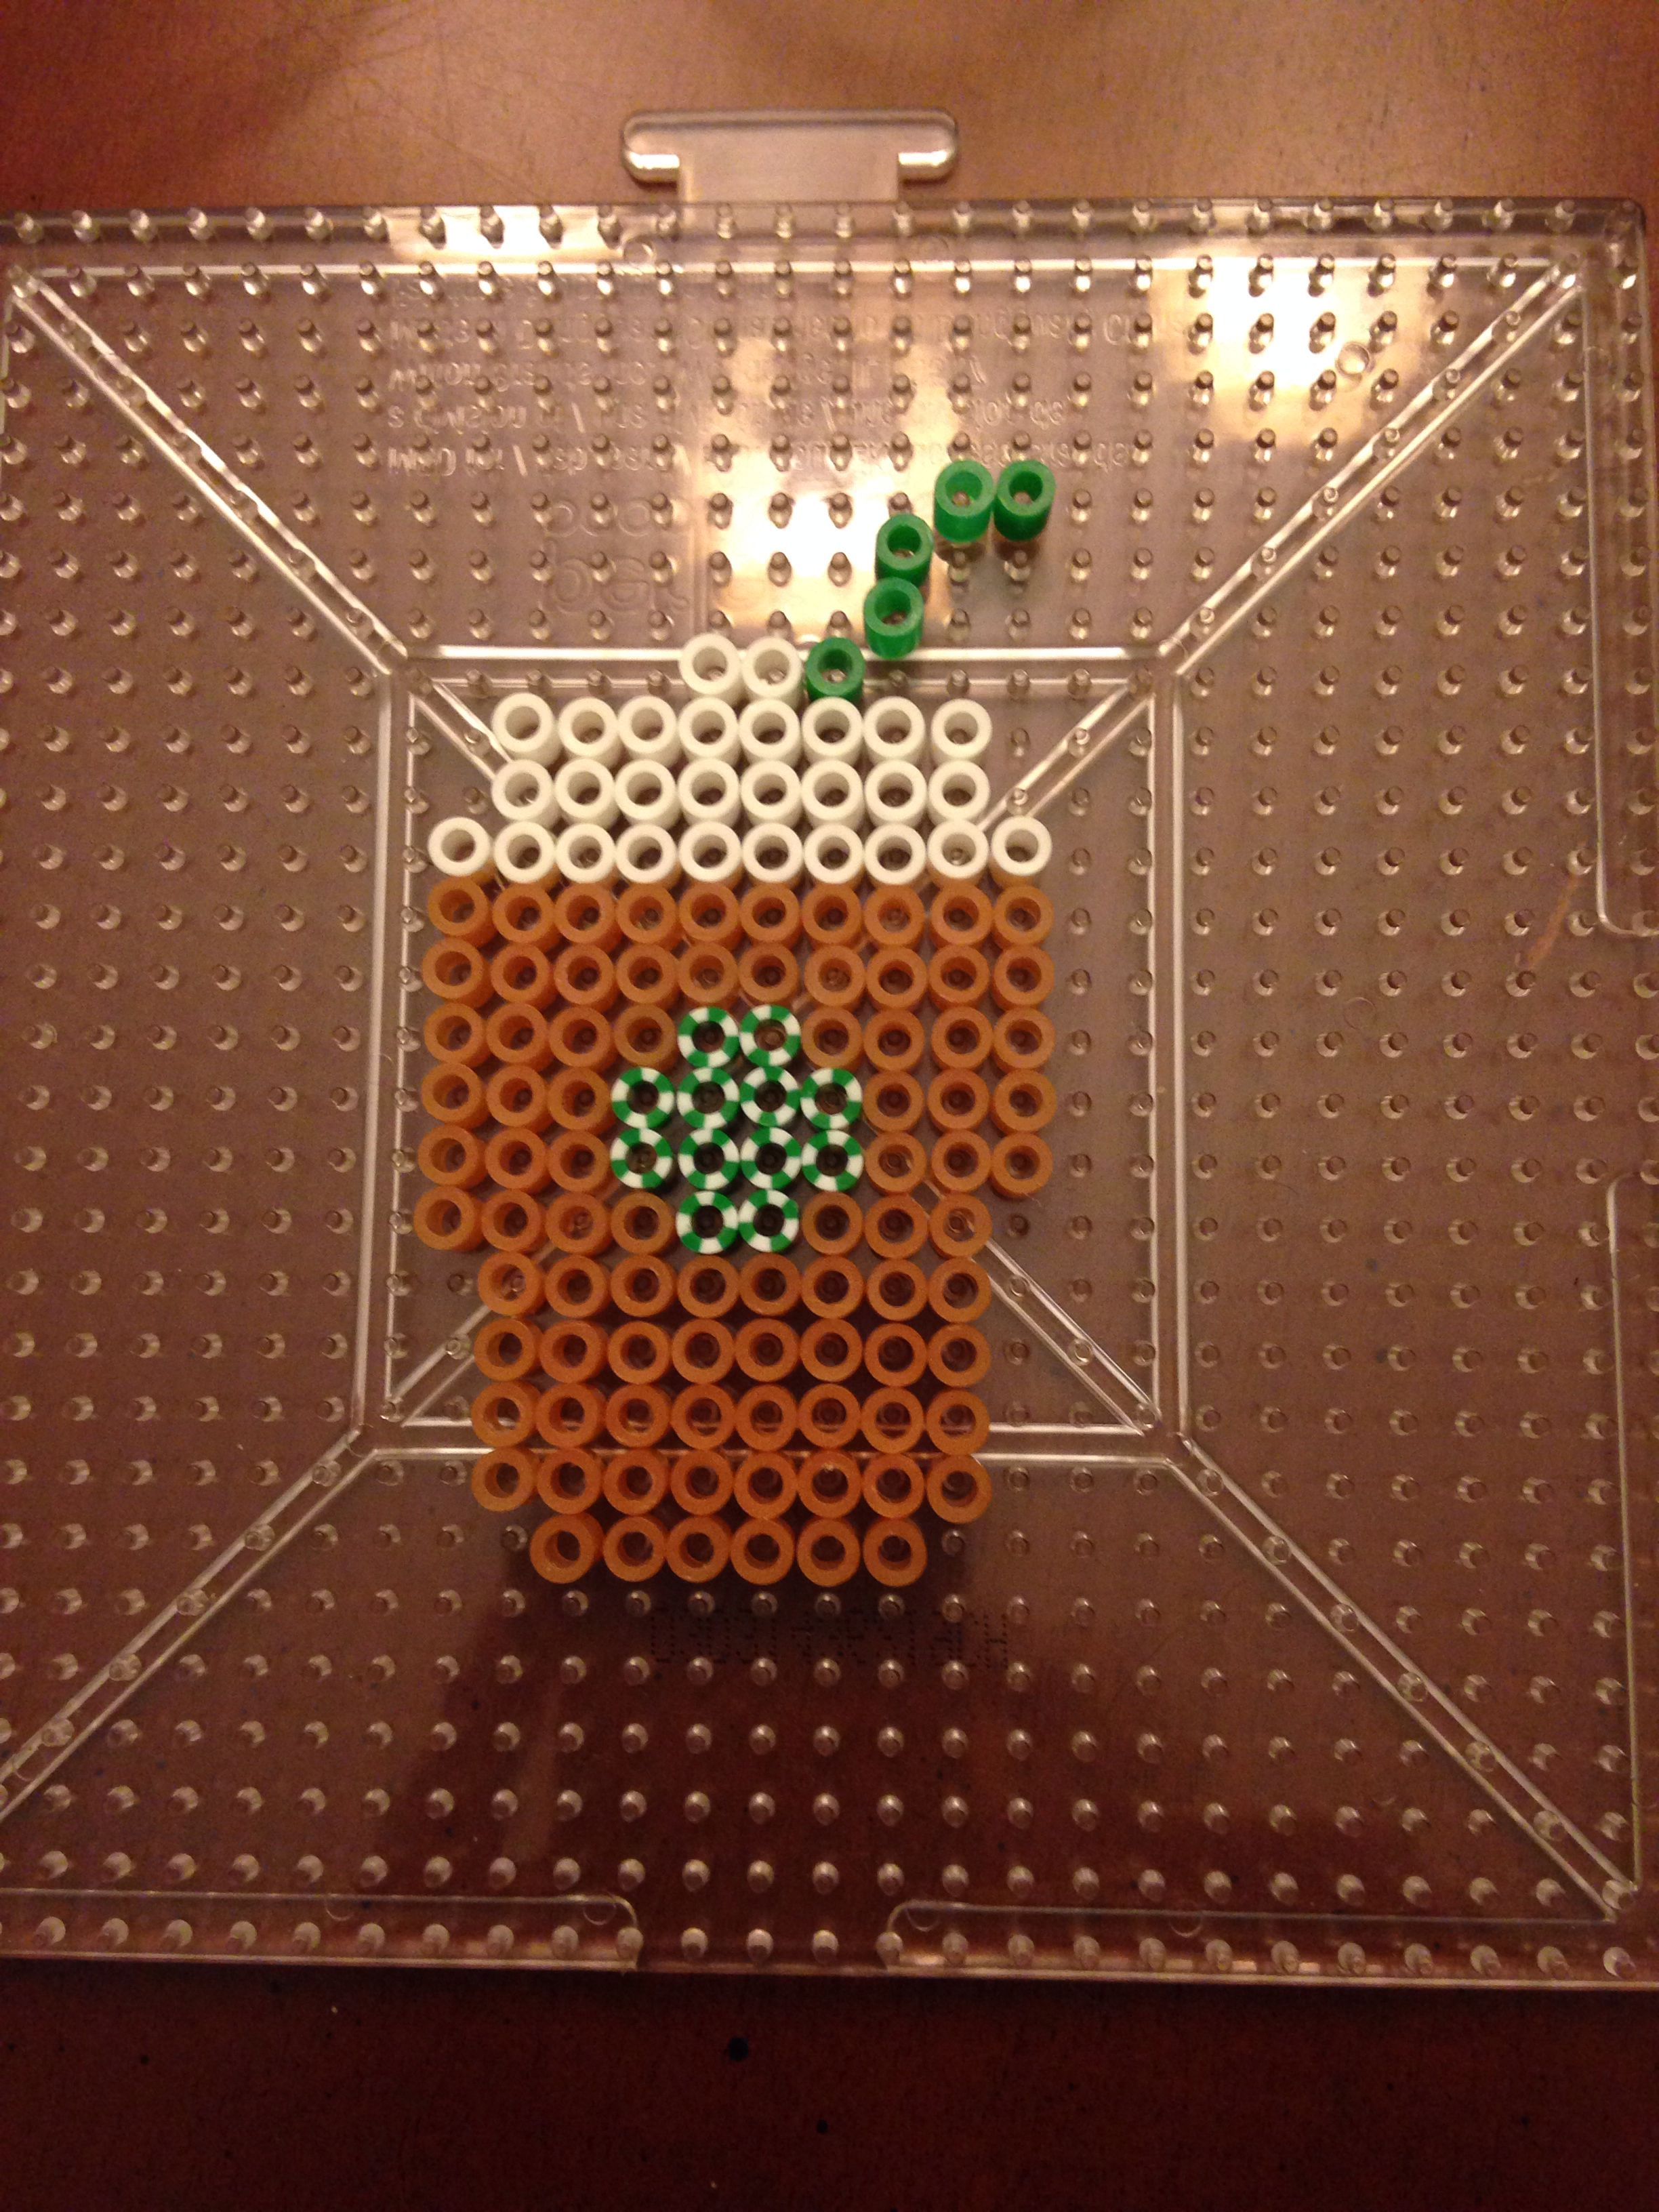 Awesome Starbucks perler idea! Too cute for a magnet for coworkers or just for me, the Starbucks fan!